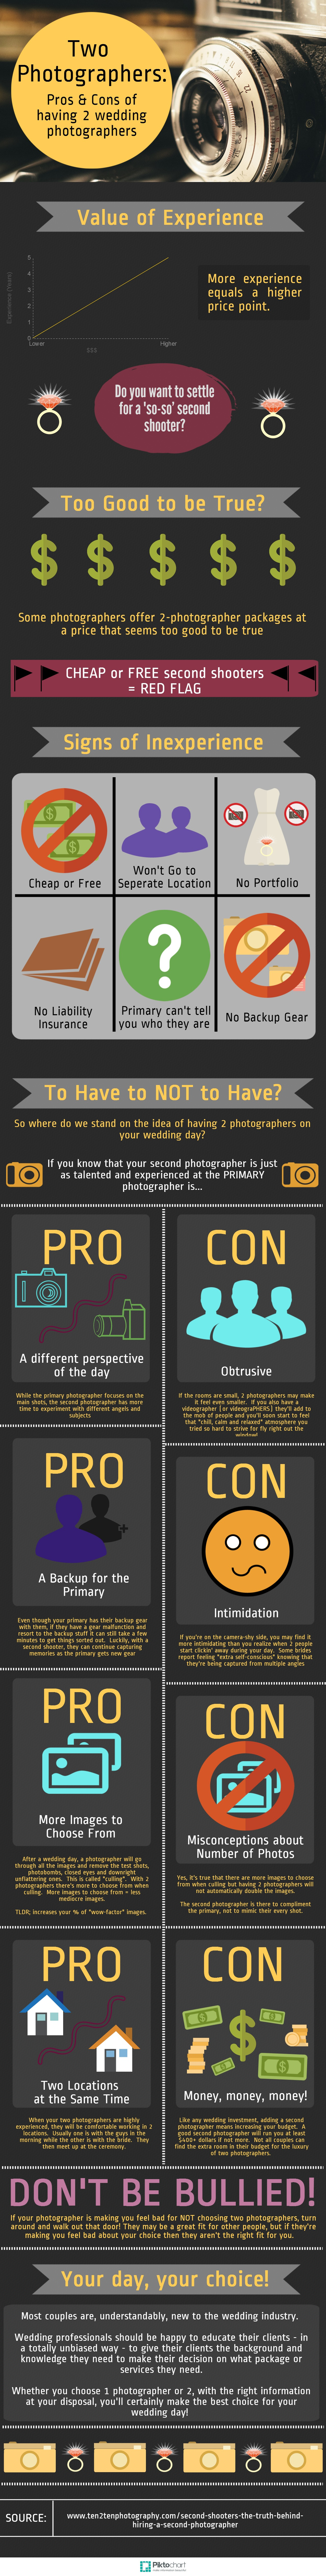 Do You Really Need Two Wedding Photographers?